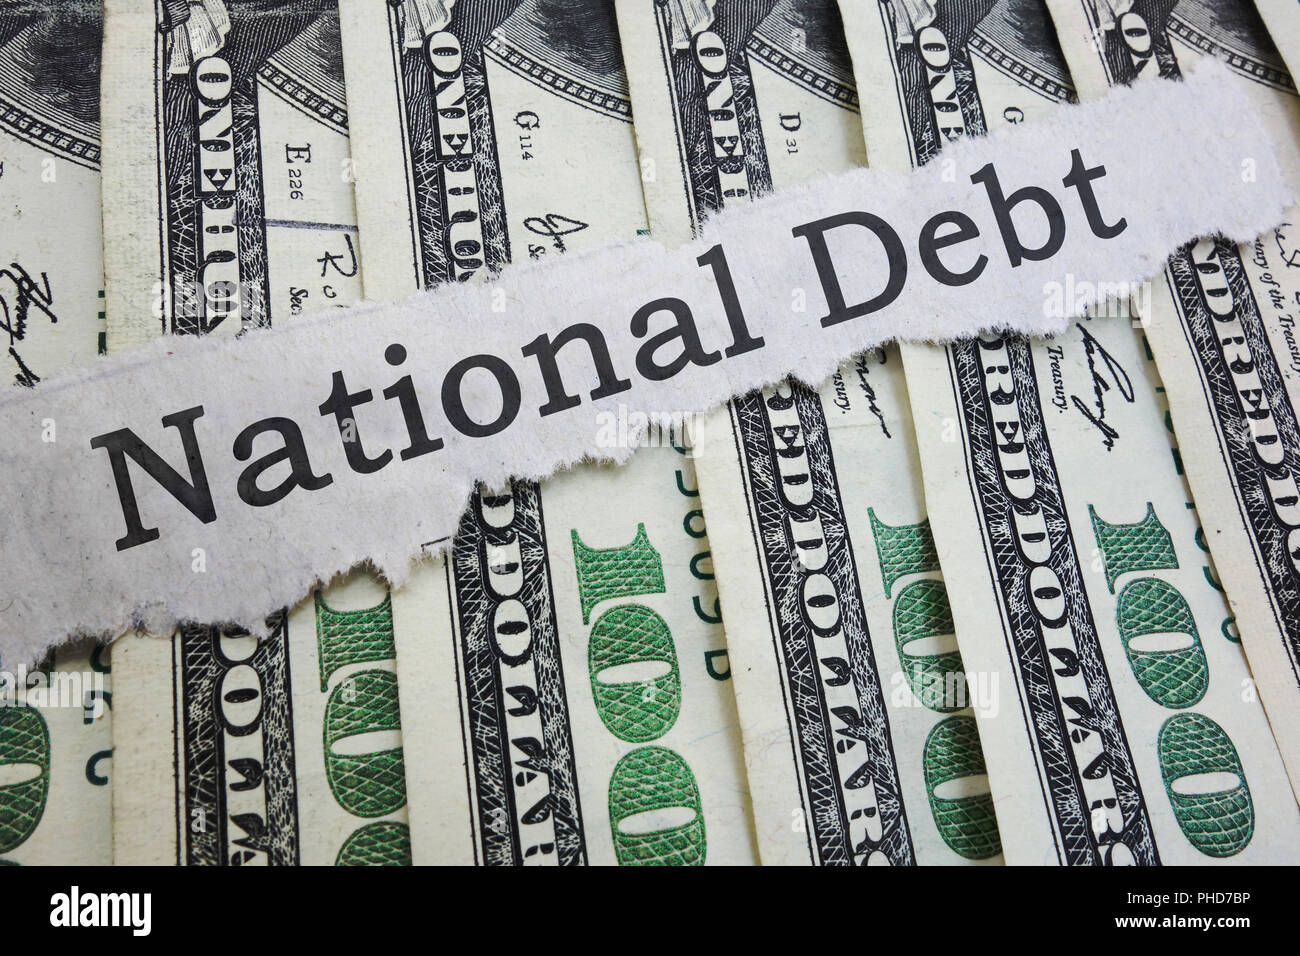 National Debt headline - Stock Image